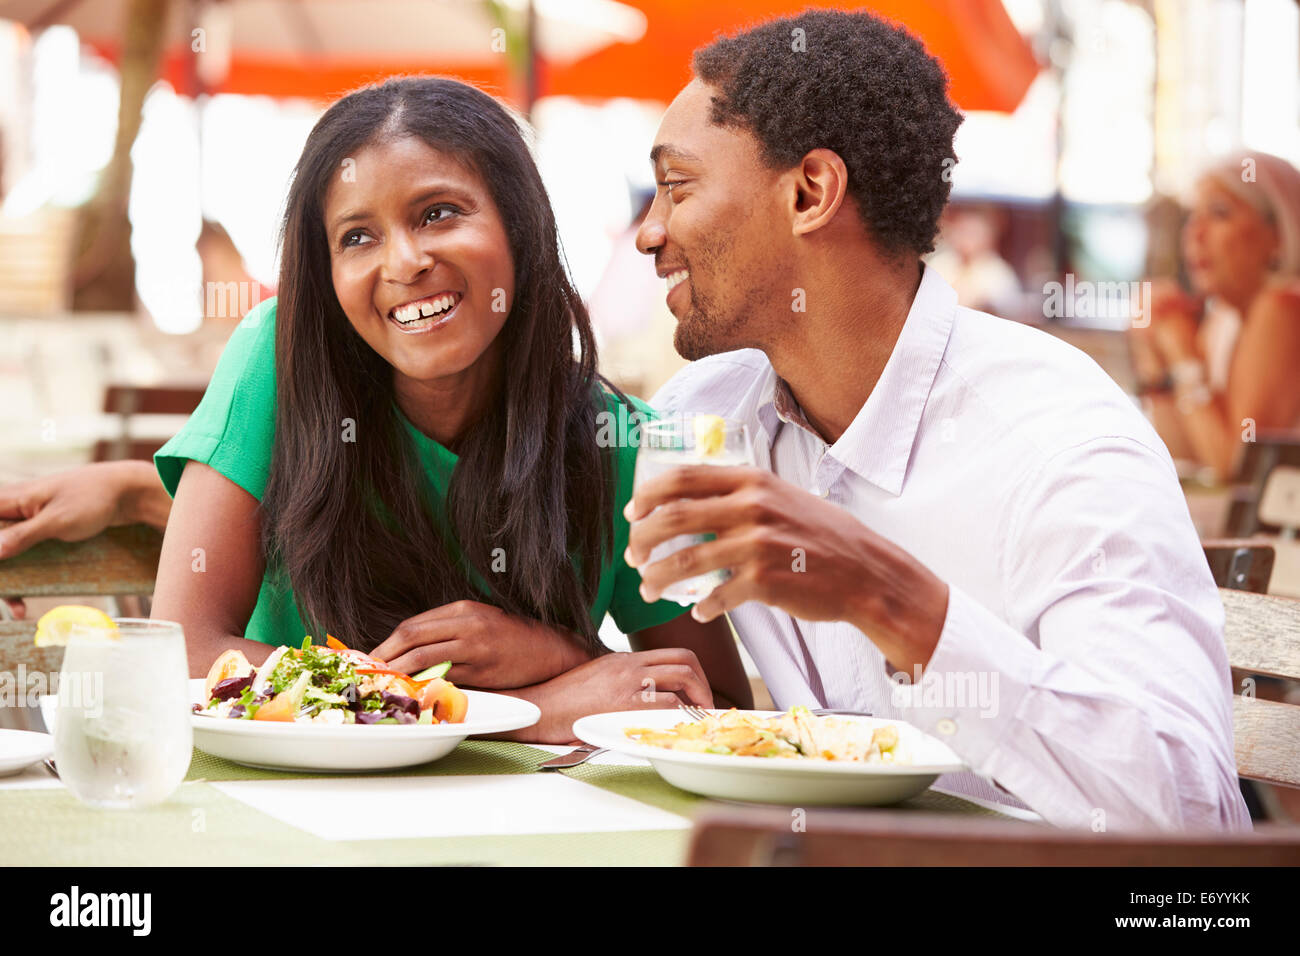 Couple Enjoying Lunch In Outdoor Restaurant - Stock Image